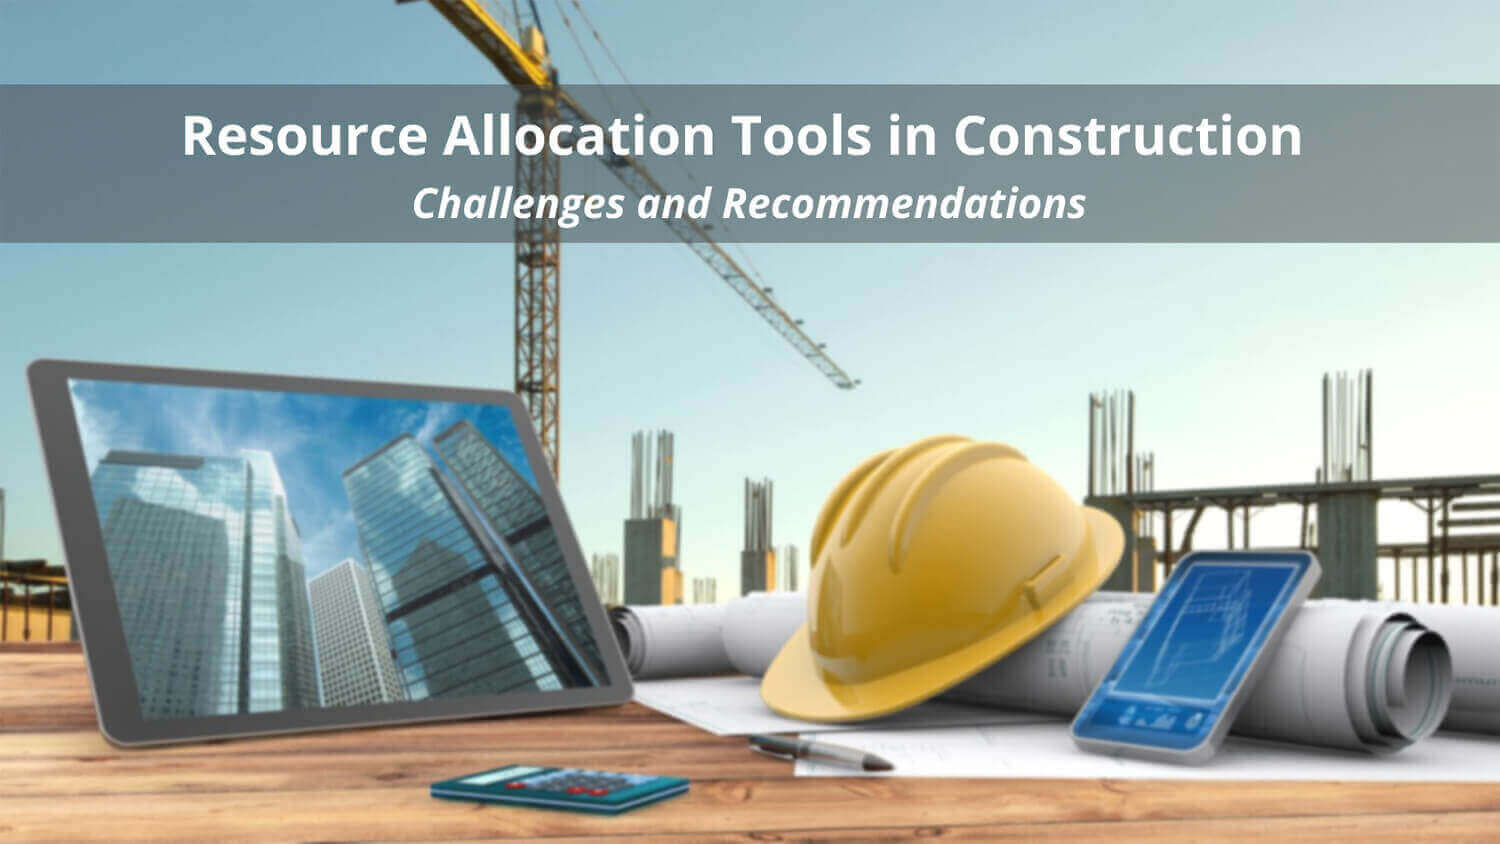 Resource Allocation Tools in Construction – Challenges and Recommendations